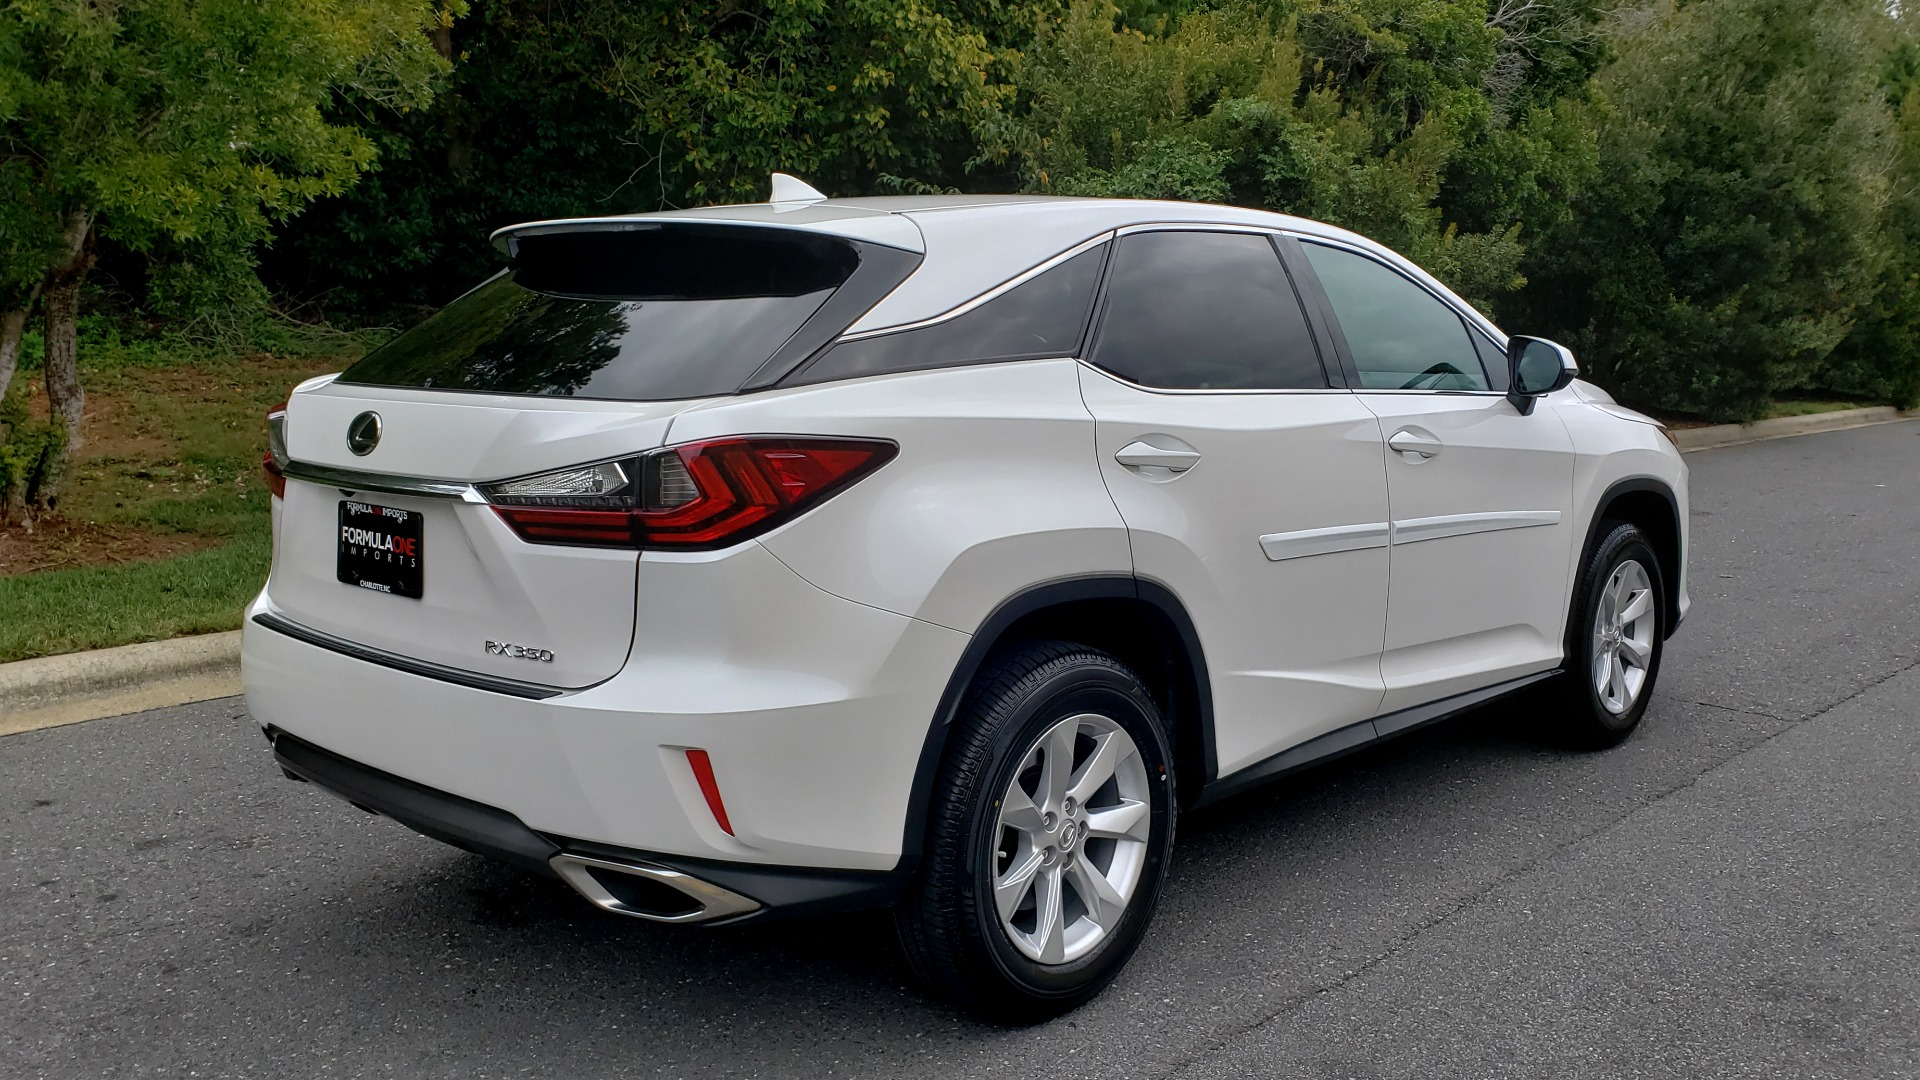 Used 2016 Lexus RX 350 FWD / 4-DR / 3.5L V6 / 8-SPD AUTO / LEATHER / REARVIEW for sale $29,795 at Formula Imports in Charlotte NC 28227 3